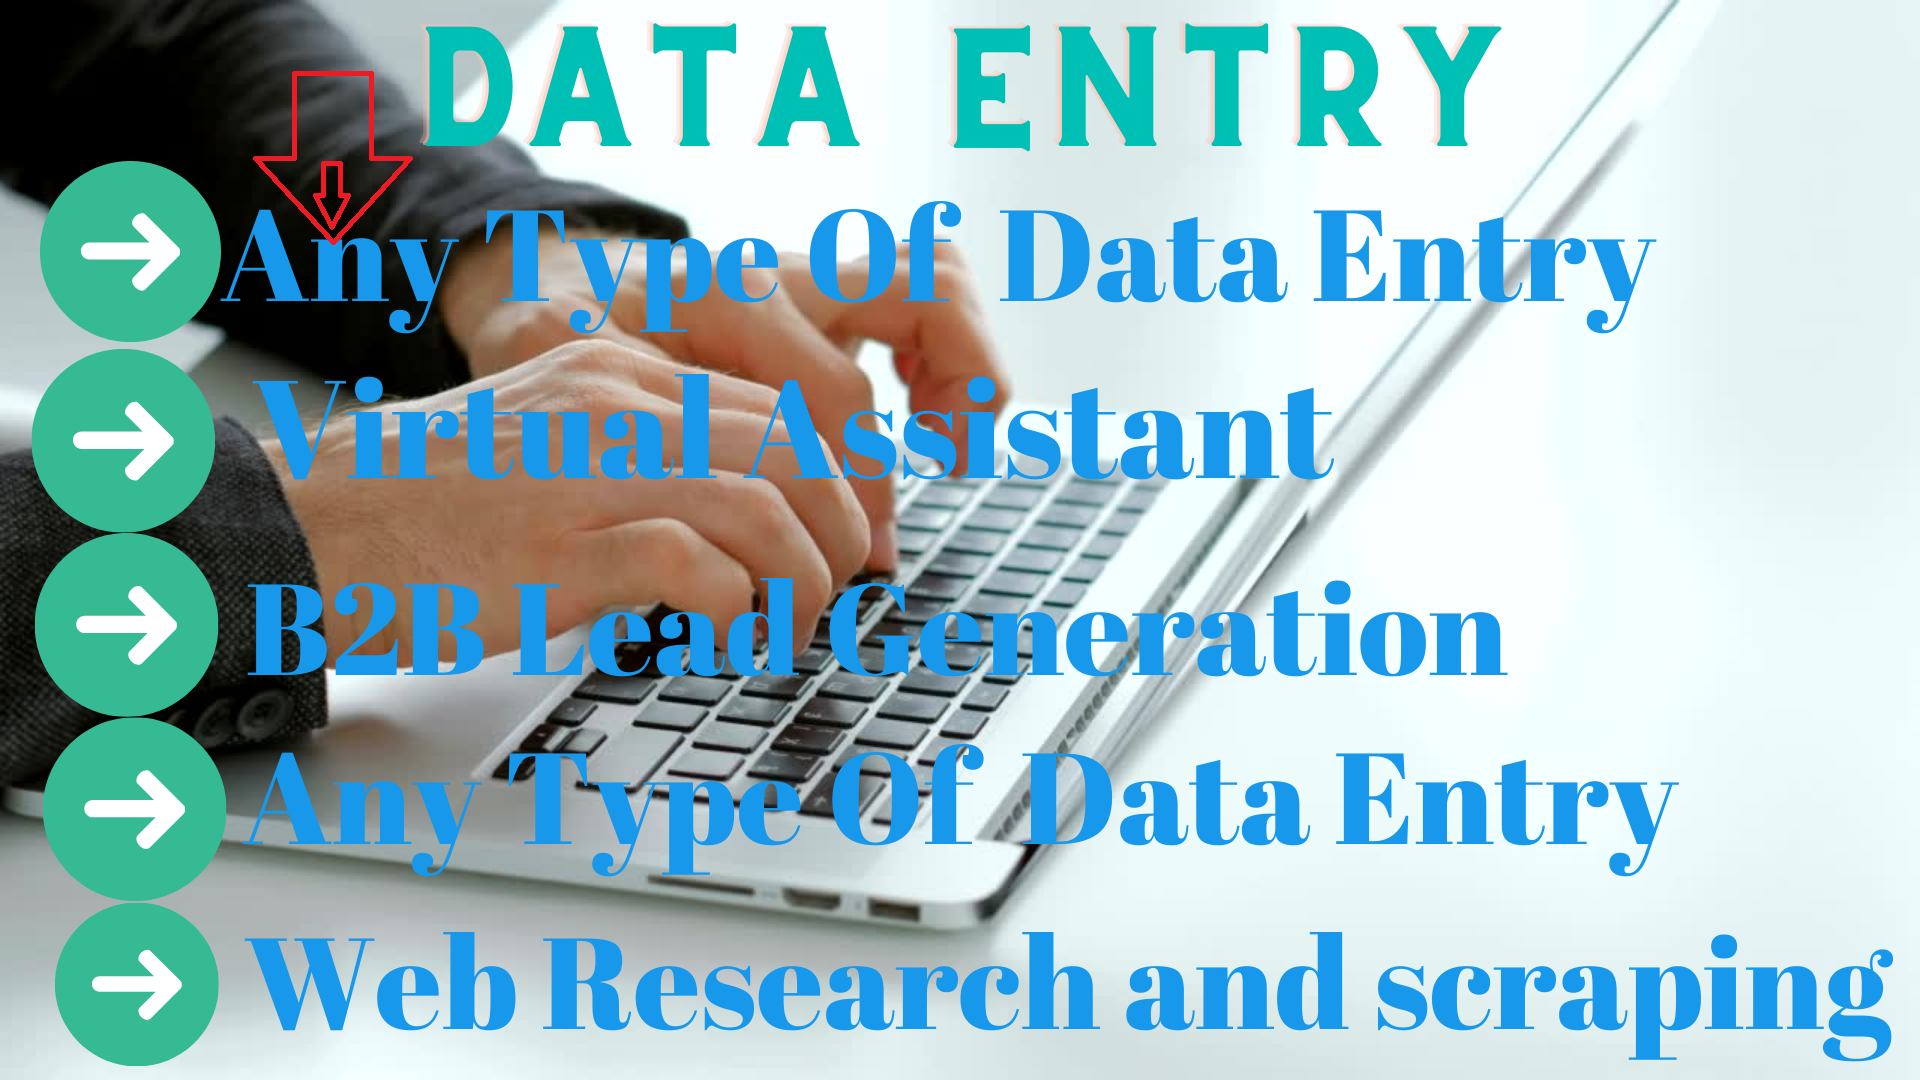 Data Entry, web research, email scraping, copy paste, pdf convert, virtual assistant